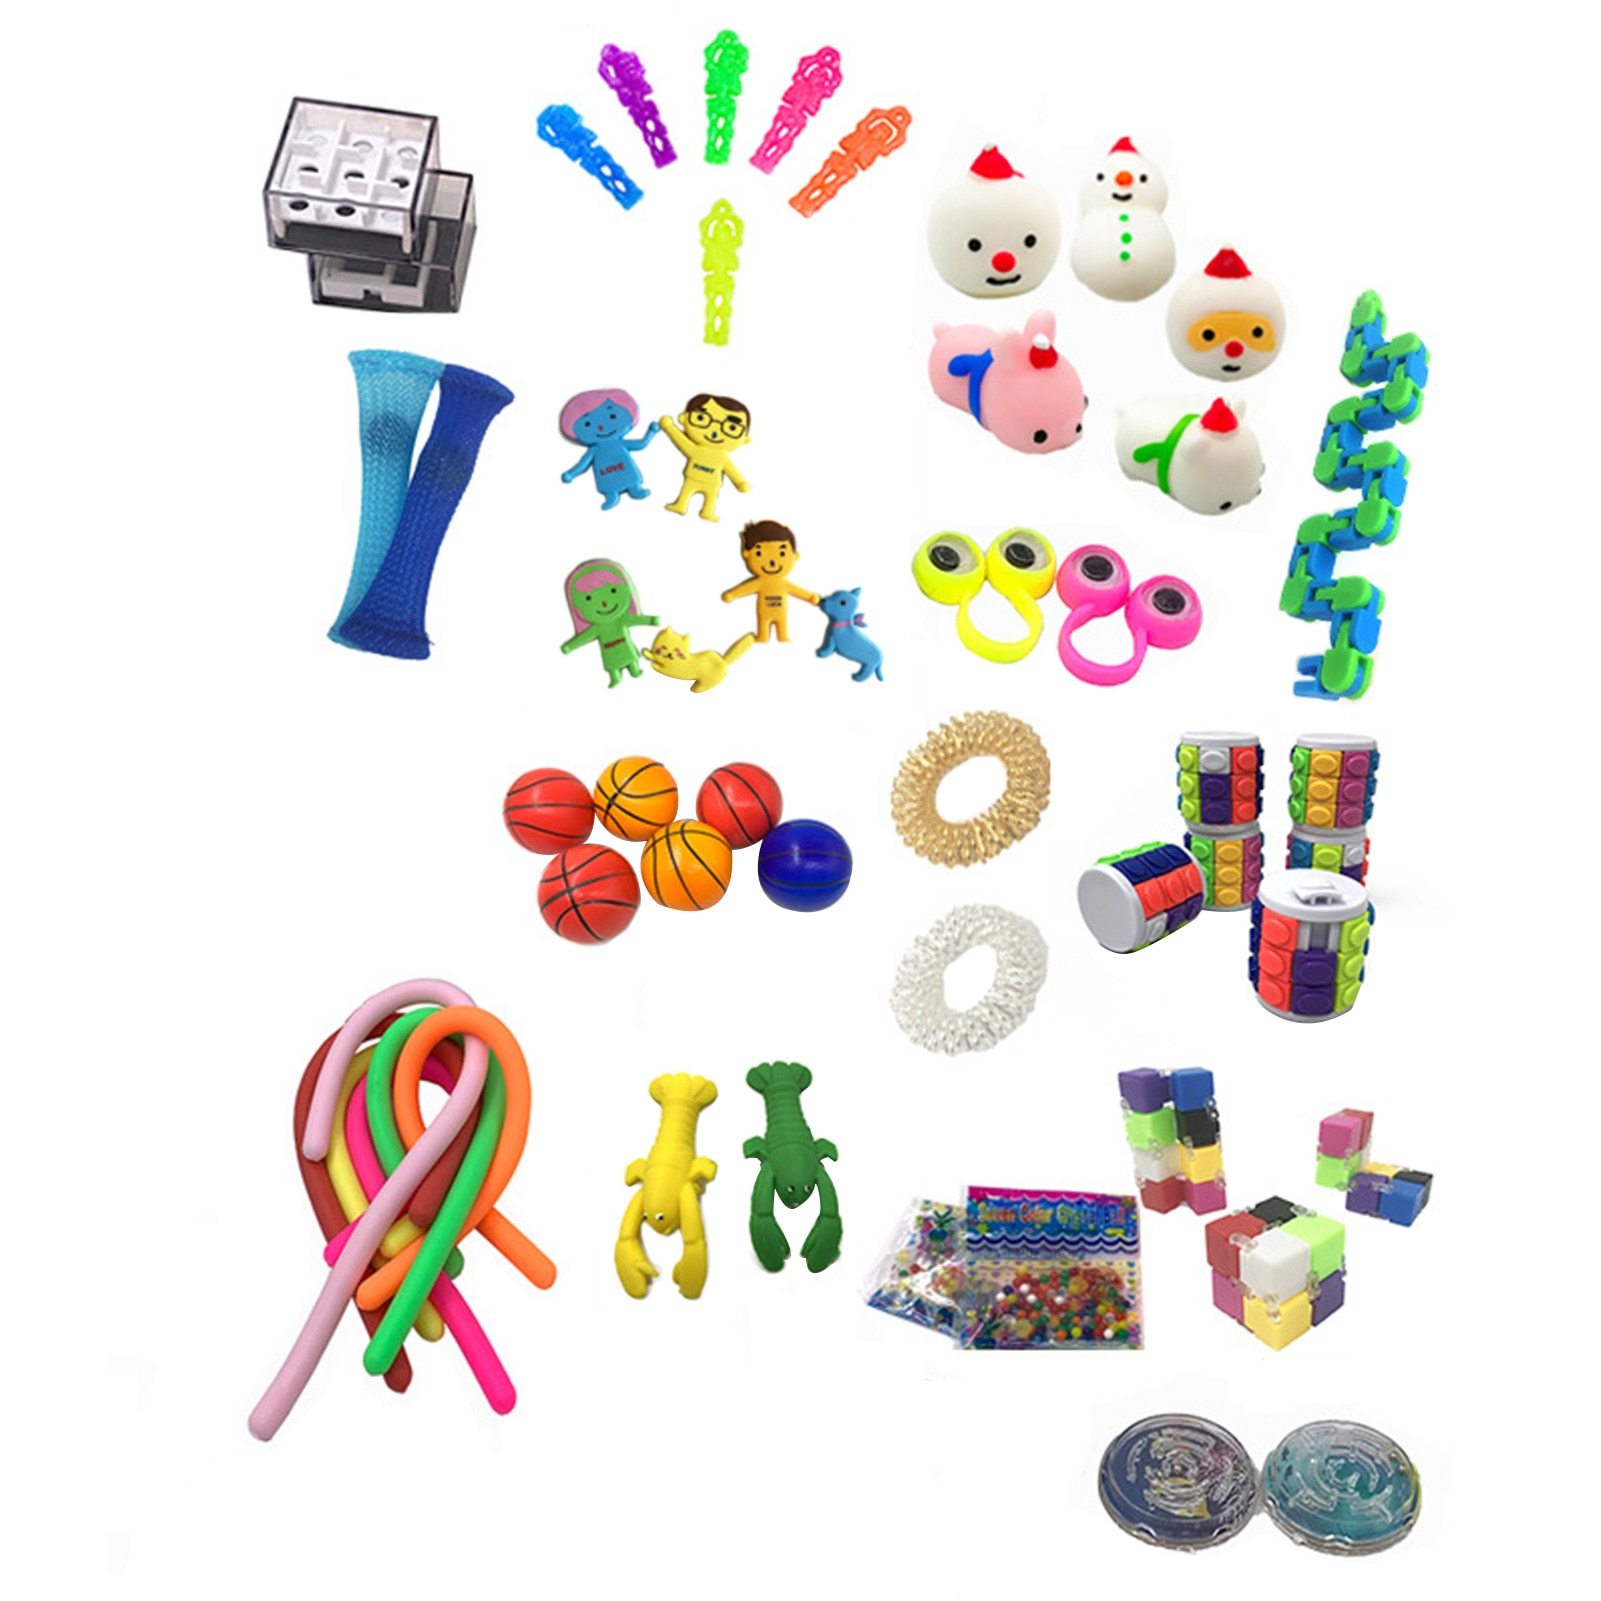 Sensory Fidget Toy Set 50 PCS Fidget Sensory Toys Set Autism Stress Relief Special Need Education Adult Tool To Relieve